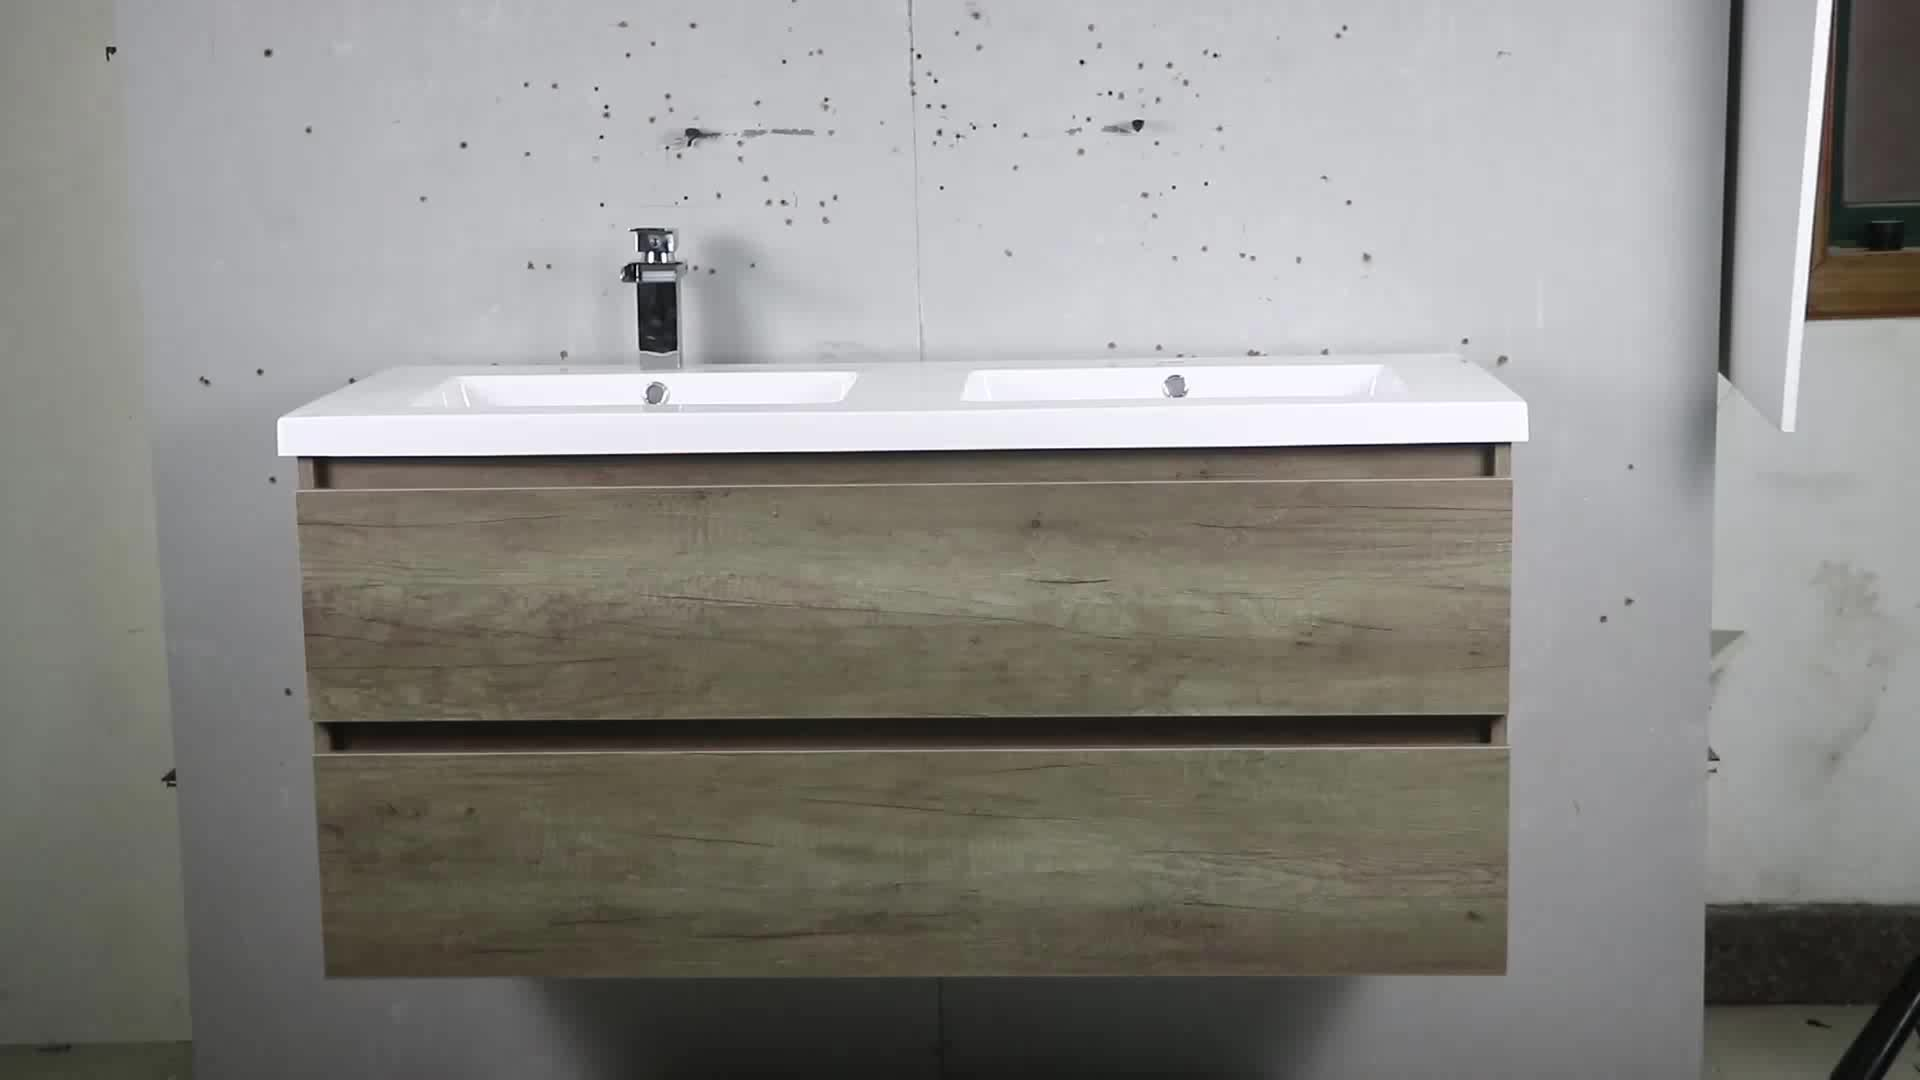 48 Inch Double Sink Wall Mounted Lowes Bathroom Vanity ...